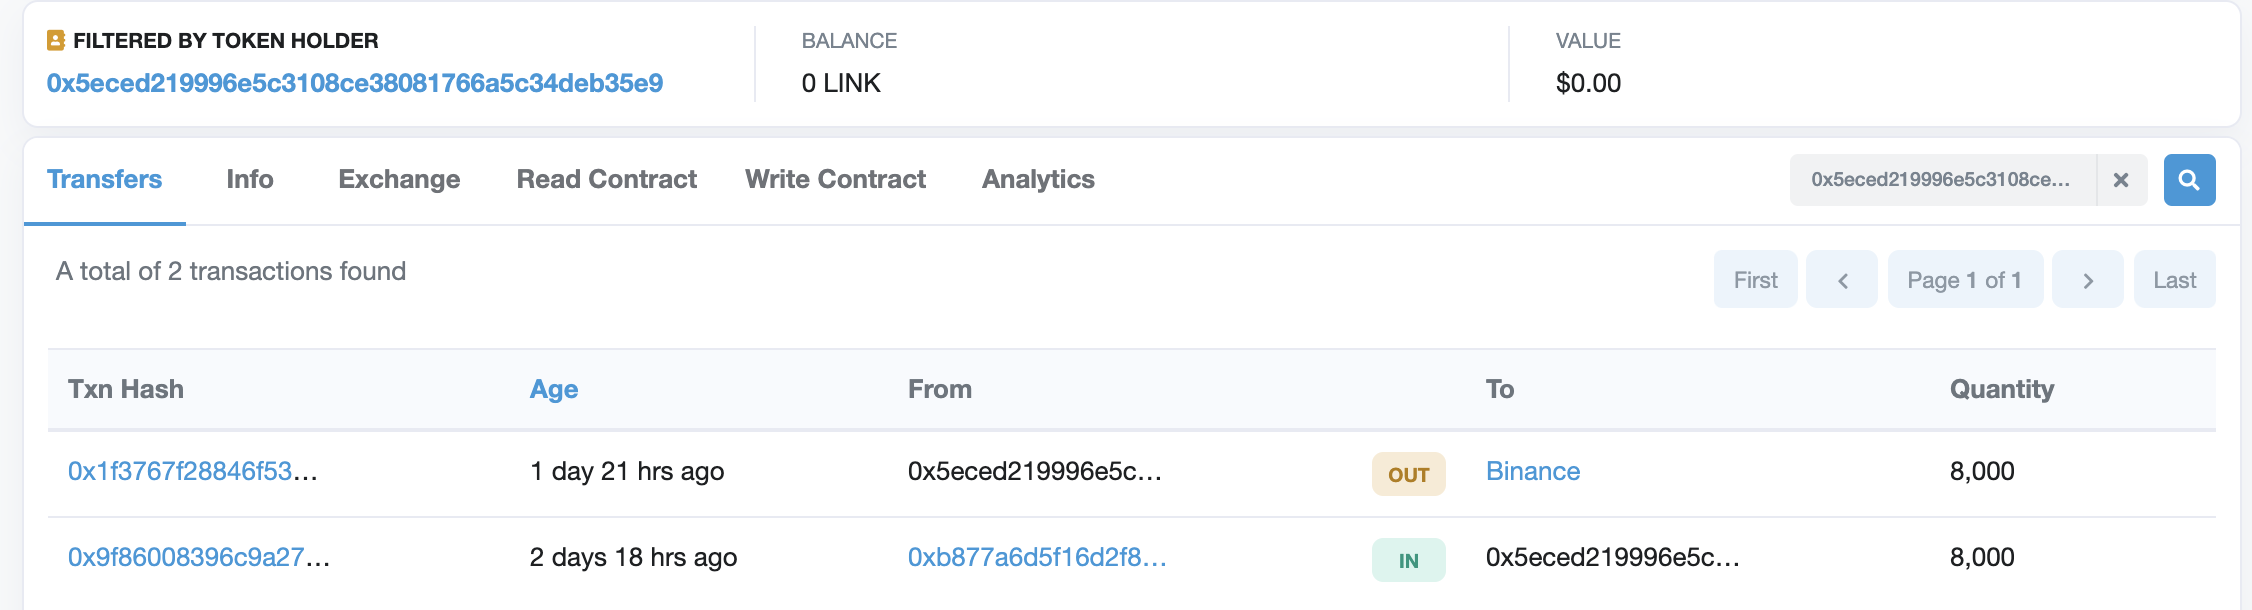 Chainlink dev holdings to Binance through obfuscation, August 2020